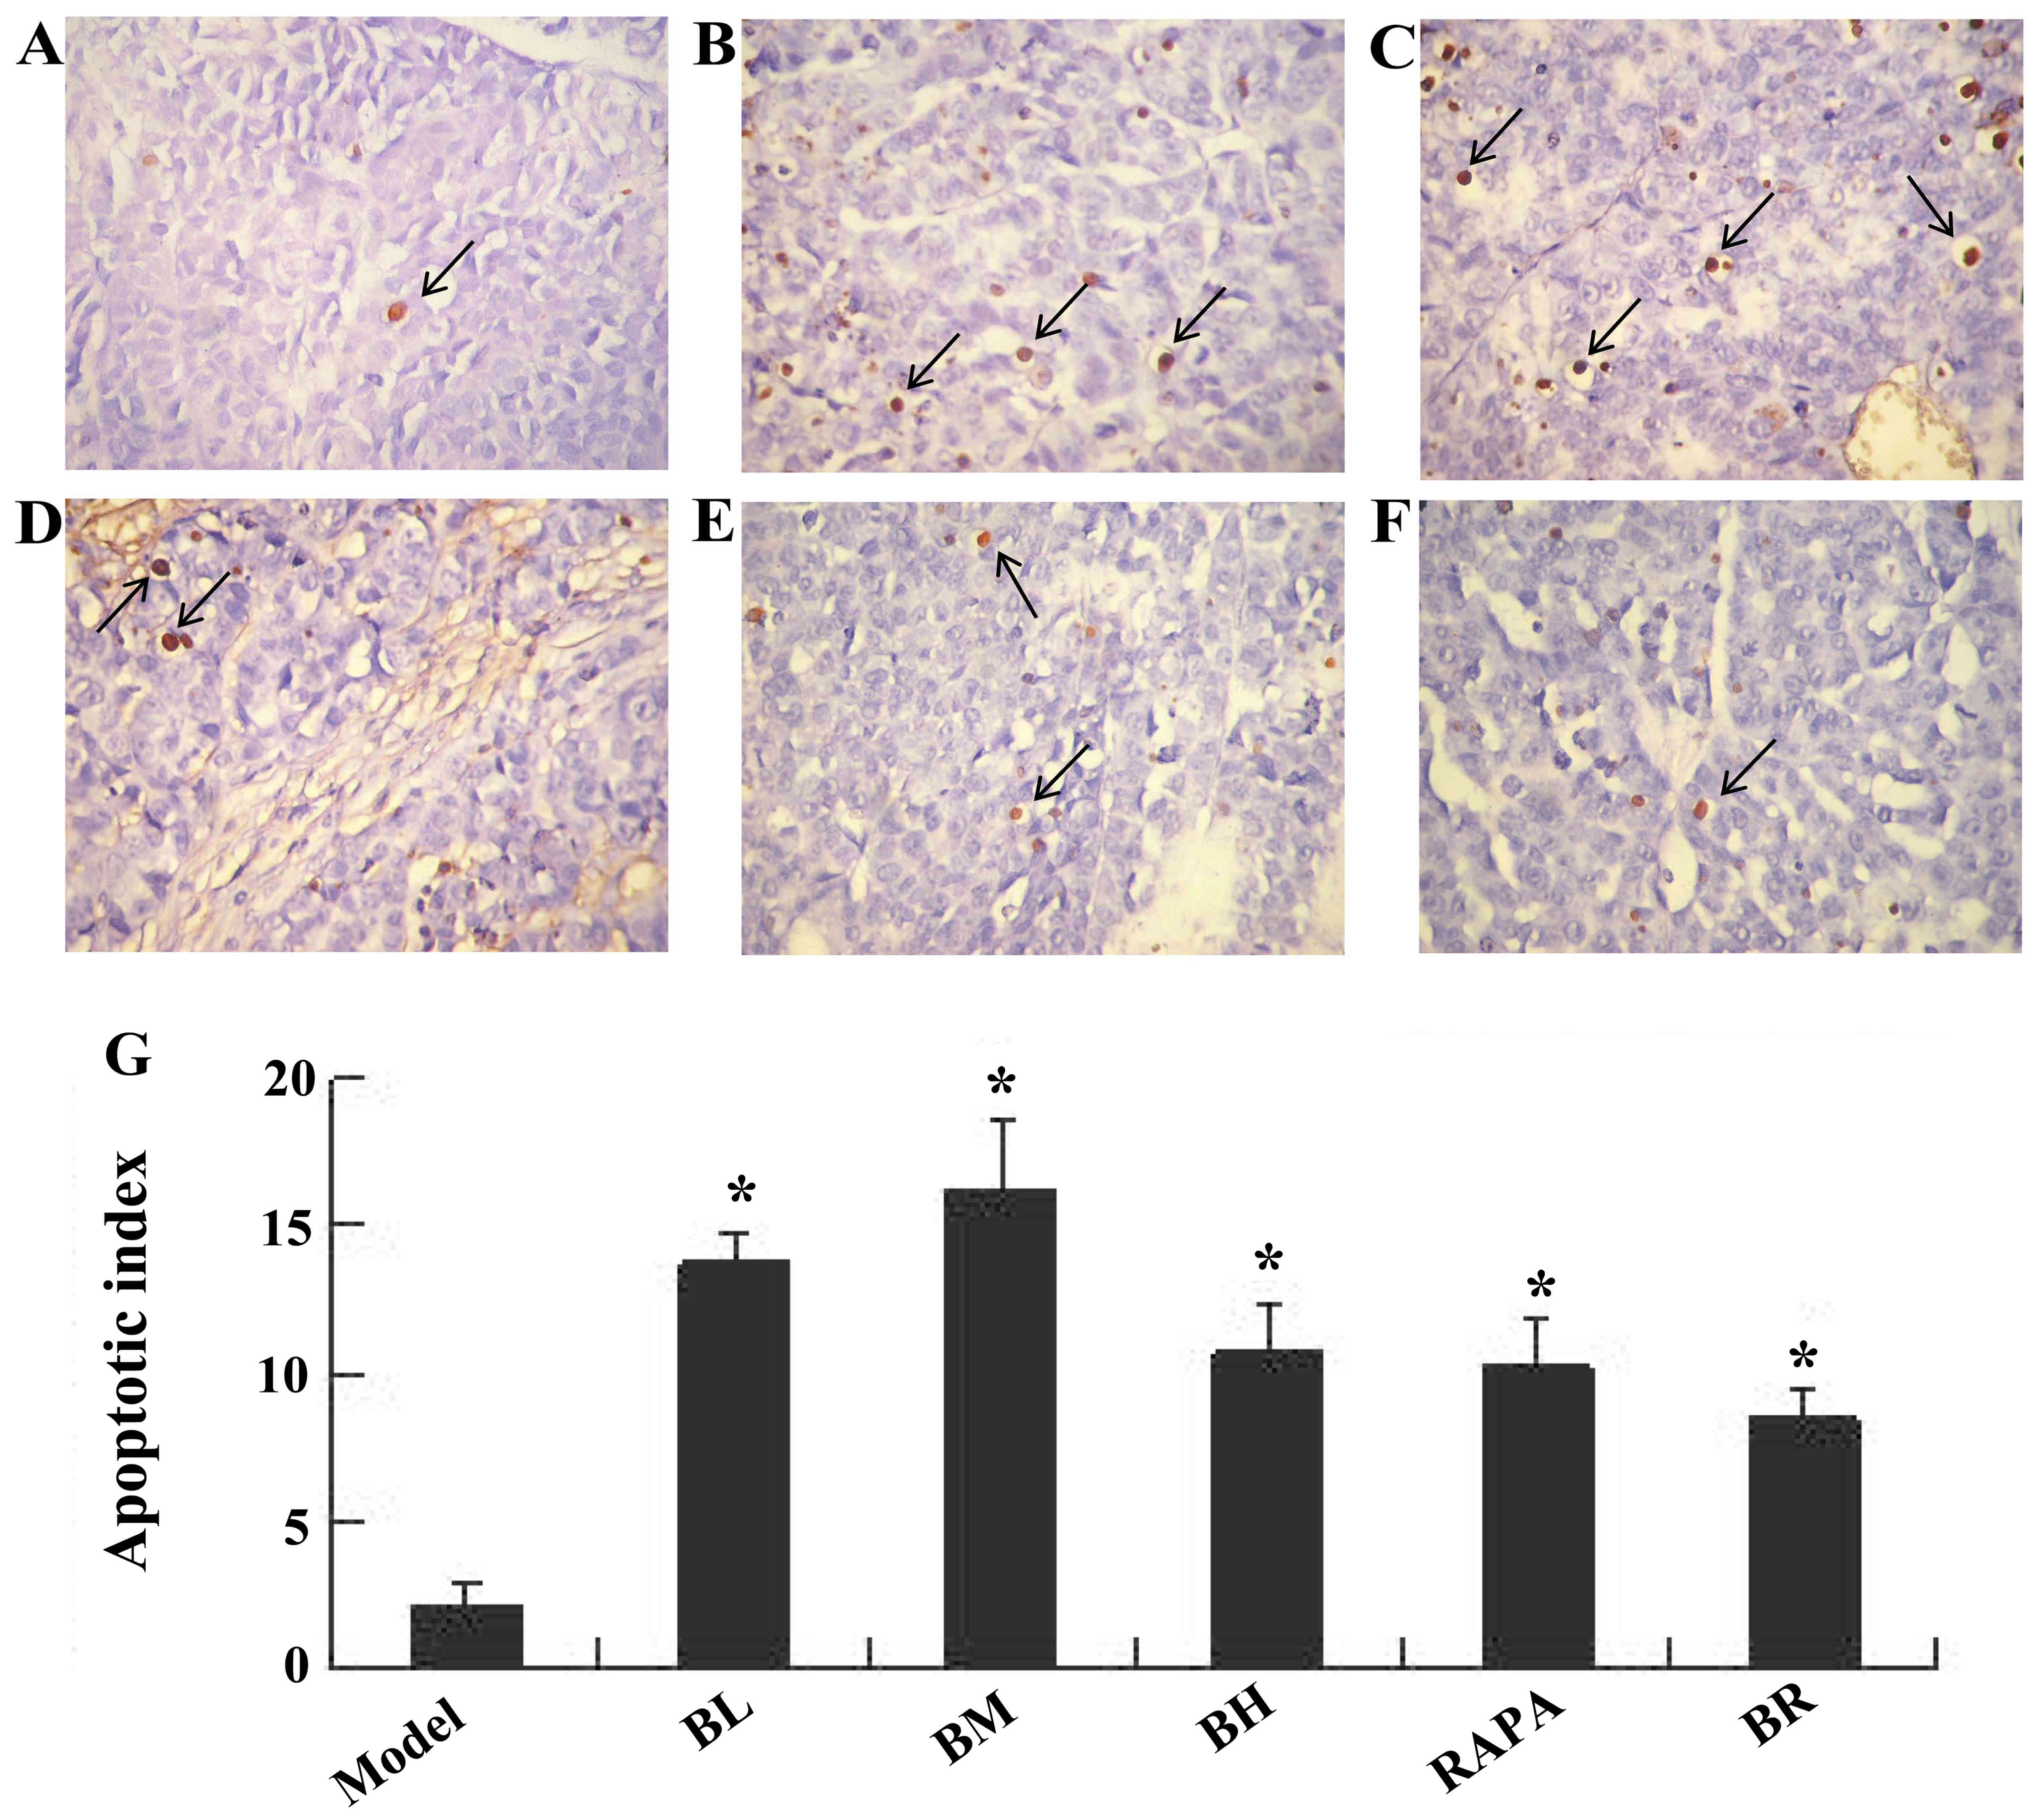 Effects of bufalin on the mTOR/p70S6K pathway and apoptosis in